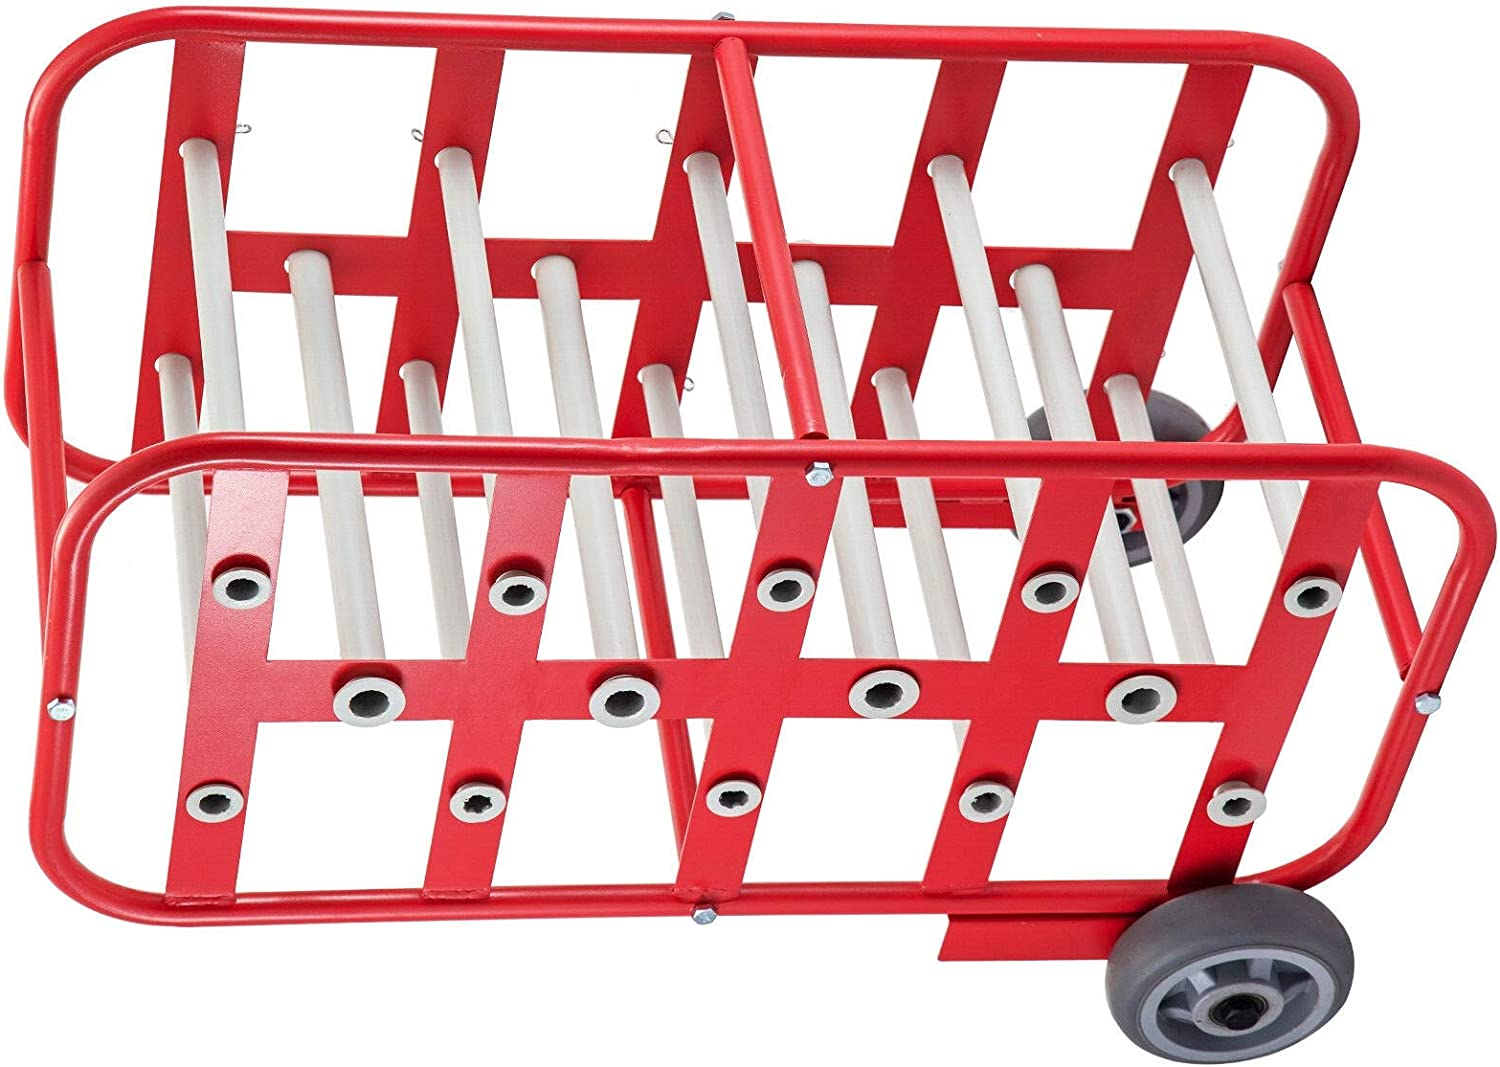 Wire Reel Caddy Spool Rack Ranking integrated 1st place 1'' Axle Multiple and 4 5'' Ranking TOP4